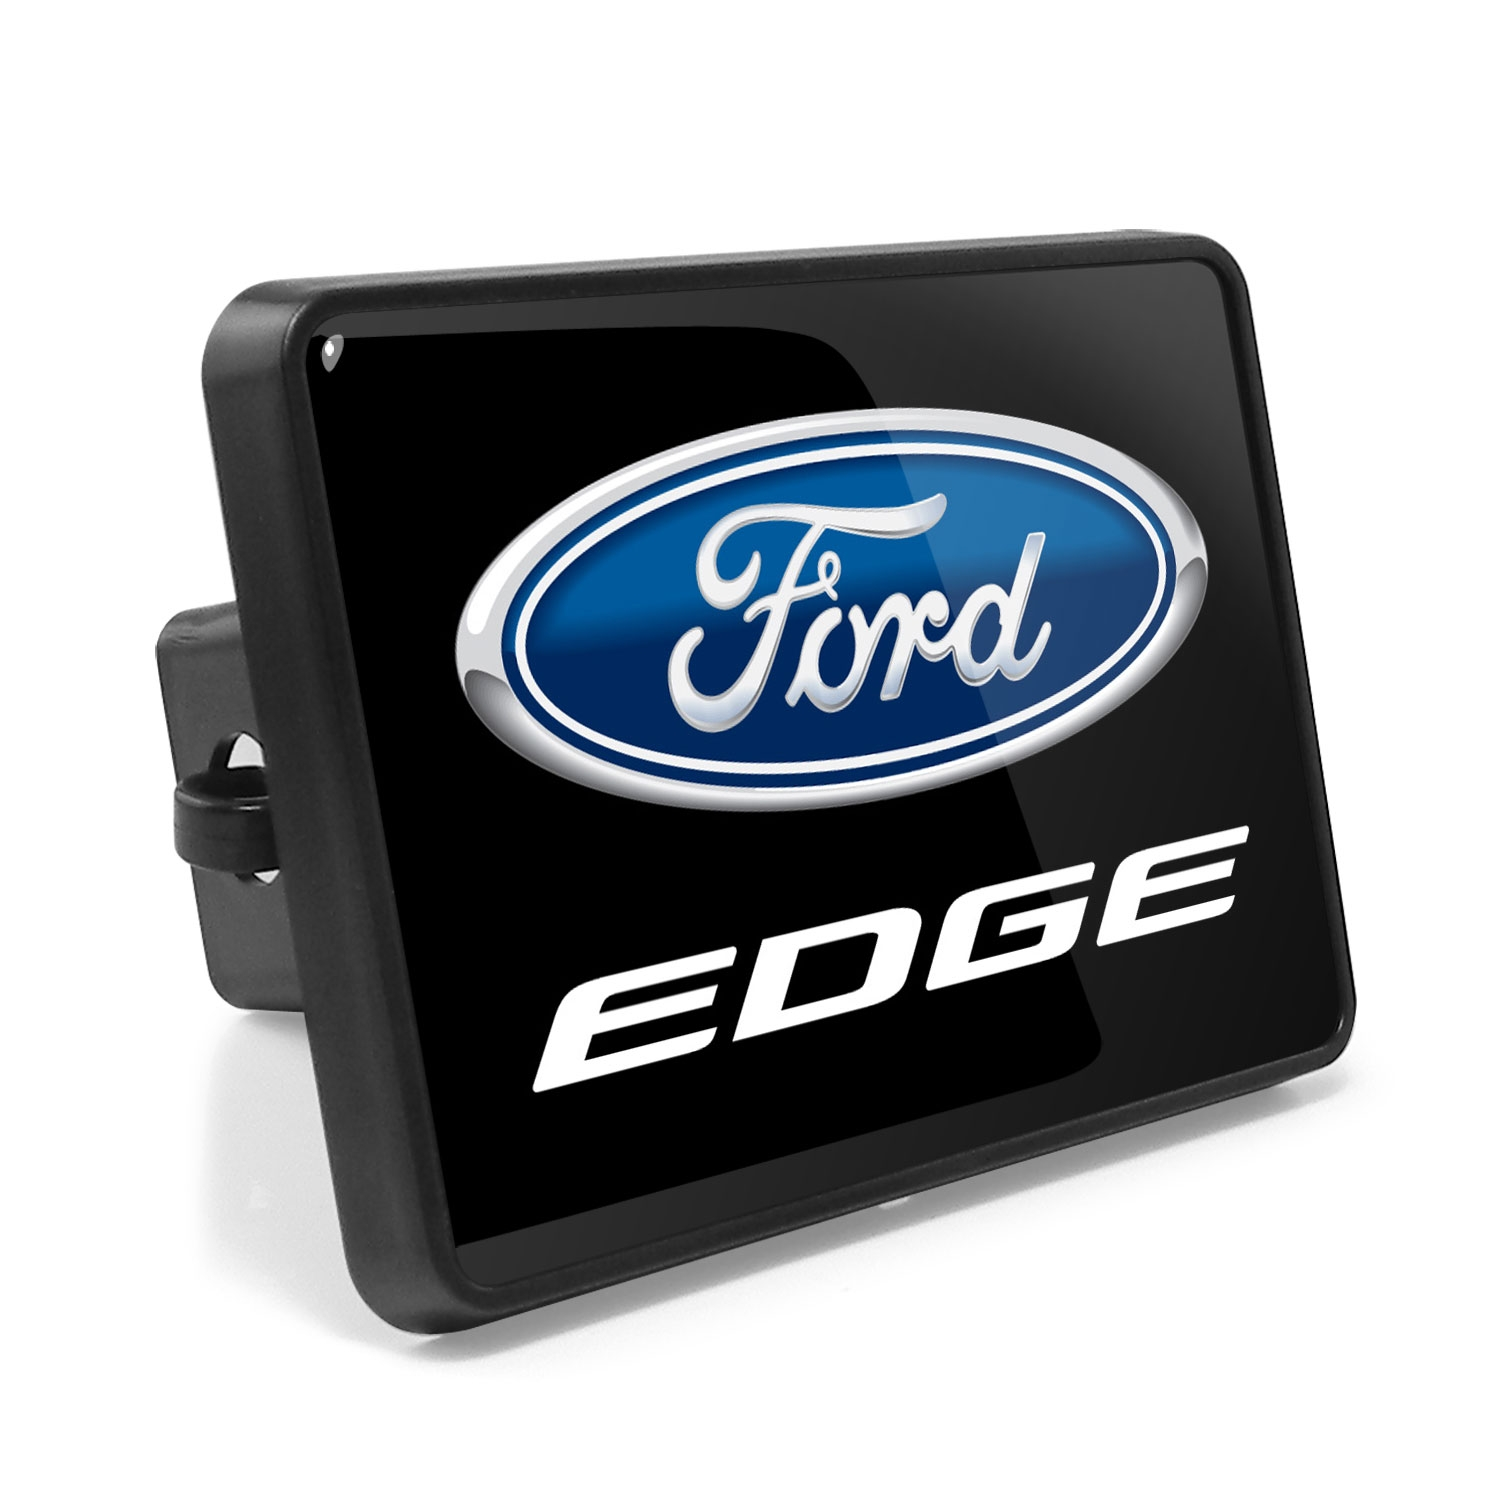 Ford Edge UV Graphic Metal Plate on ABS Plastic 2 inch Tow Hitch Cover